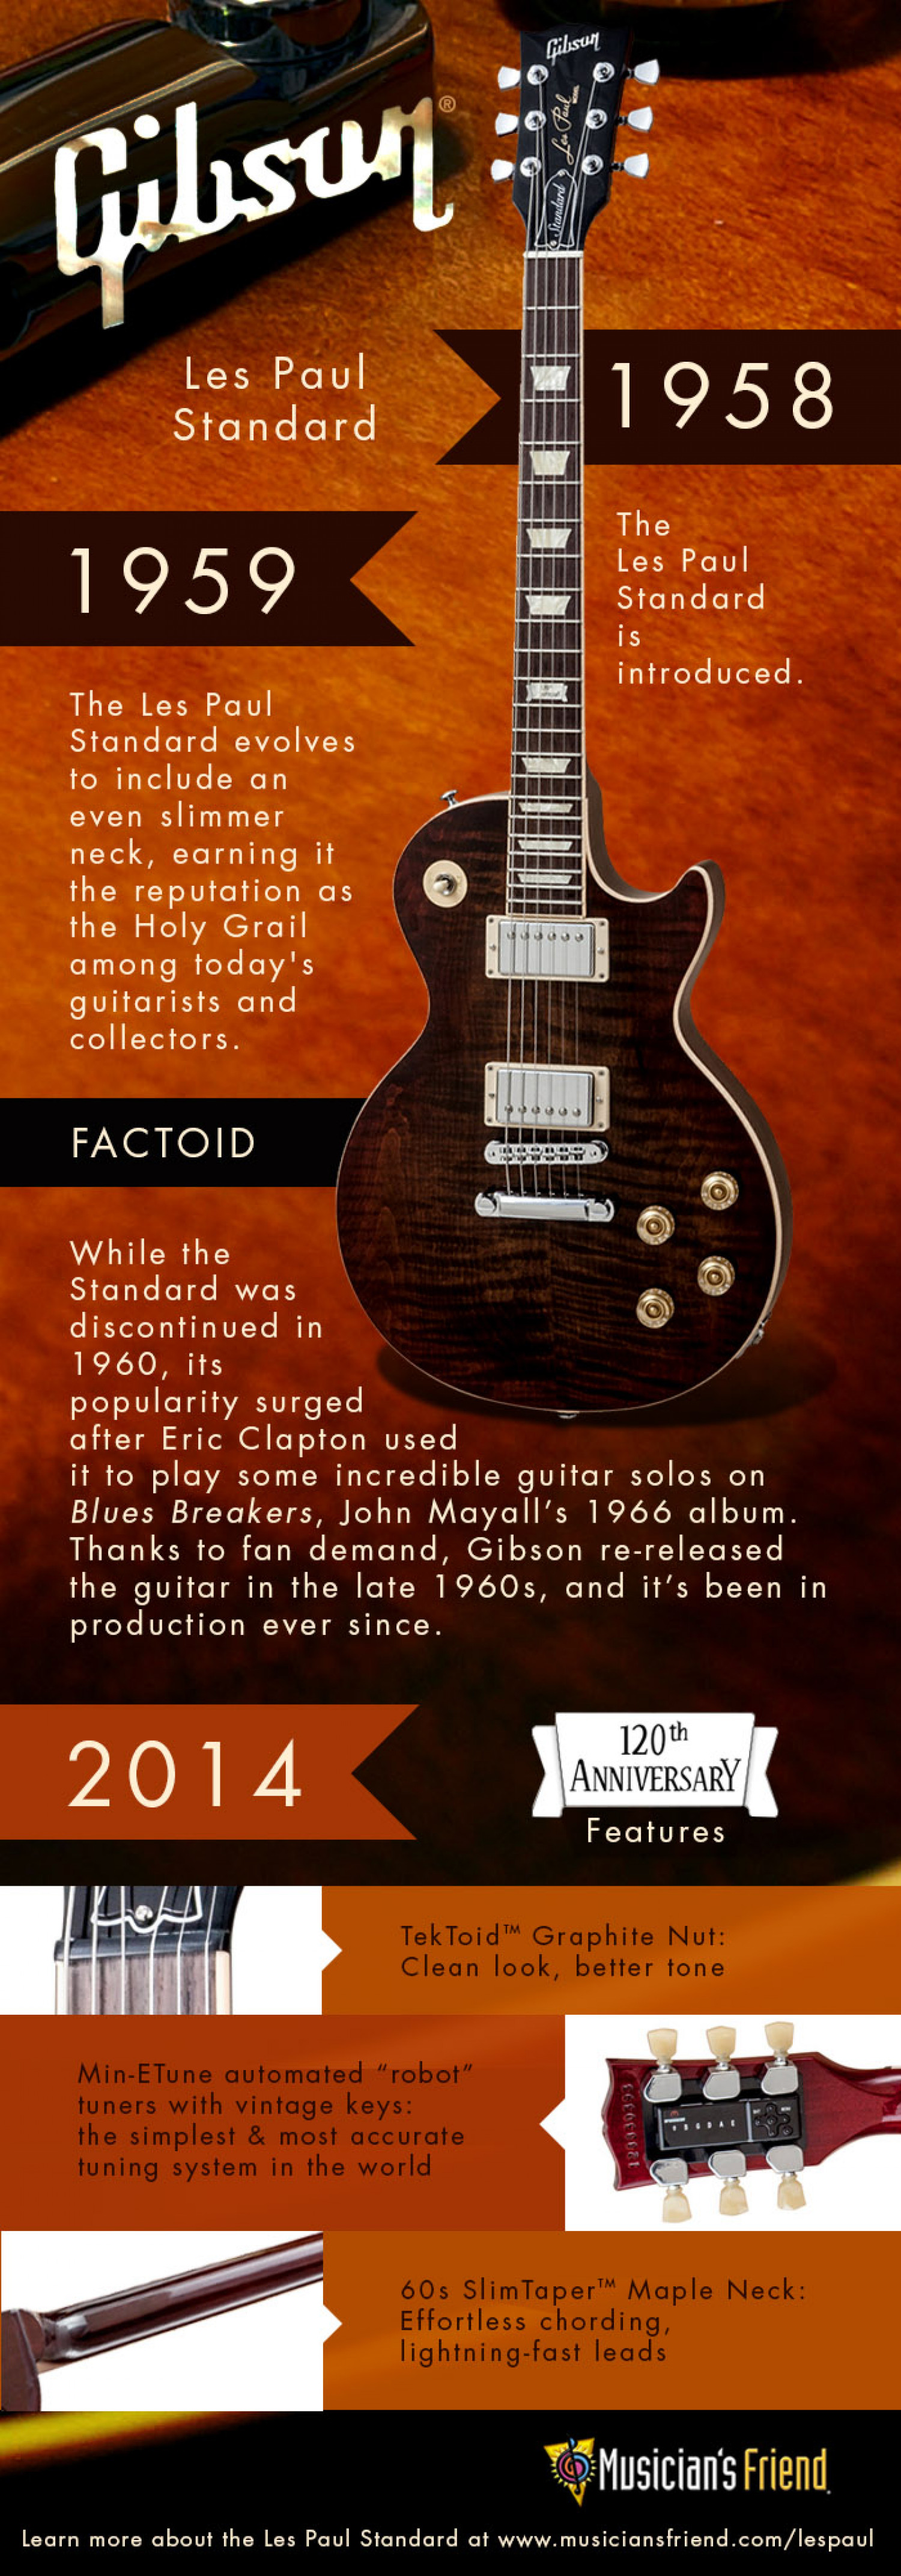 The Gibson Les Paul Standard 120th Anniversary Edition Infographic